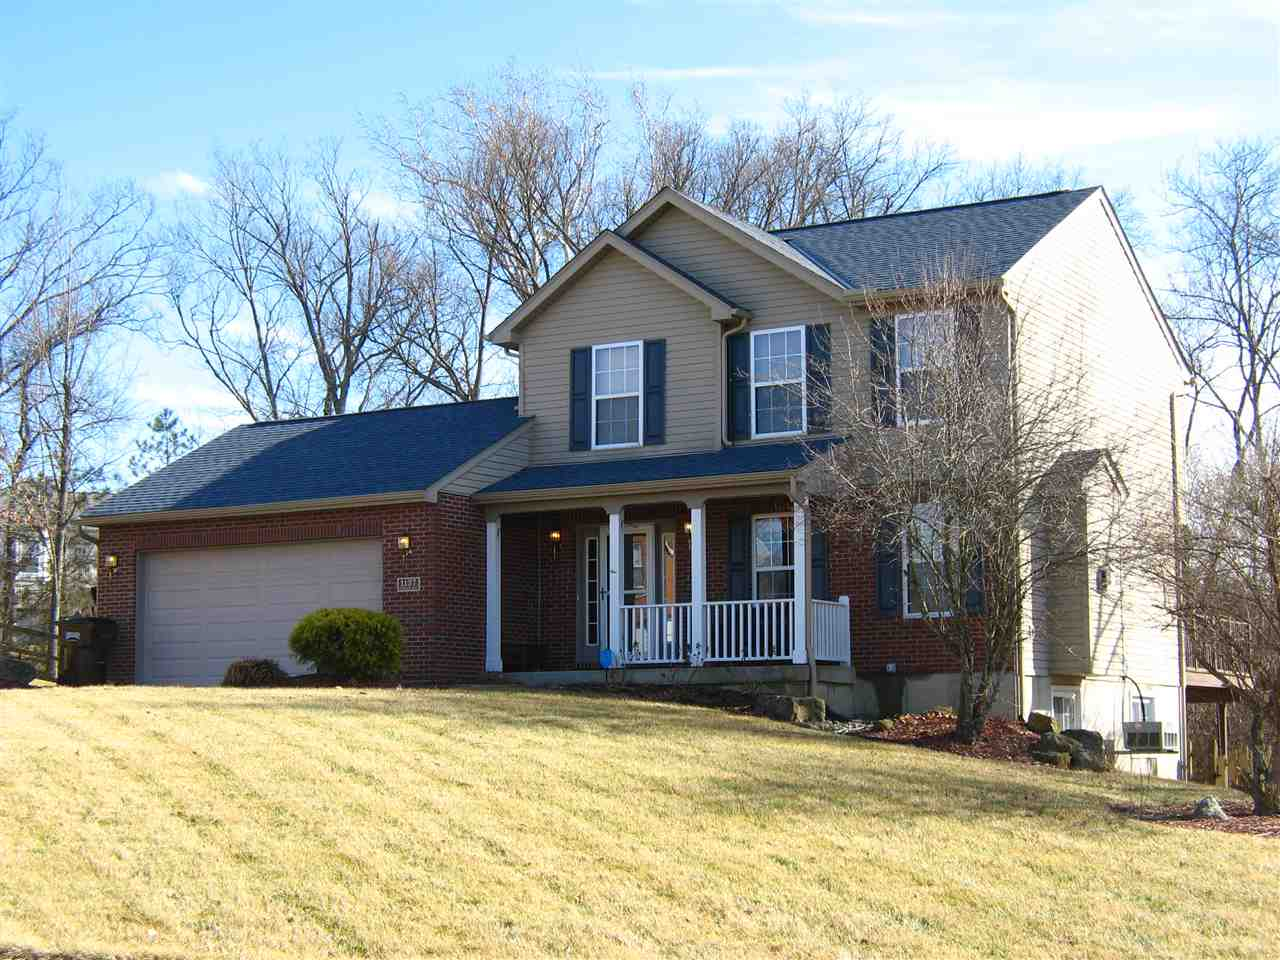 Photo 1 for 1137 Casson Way Independence, KY 41051